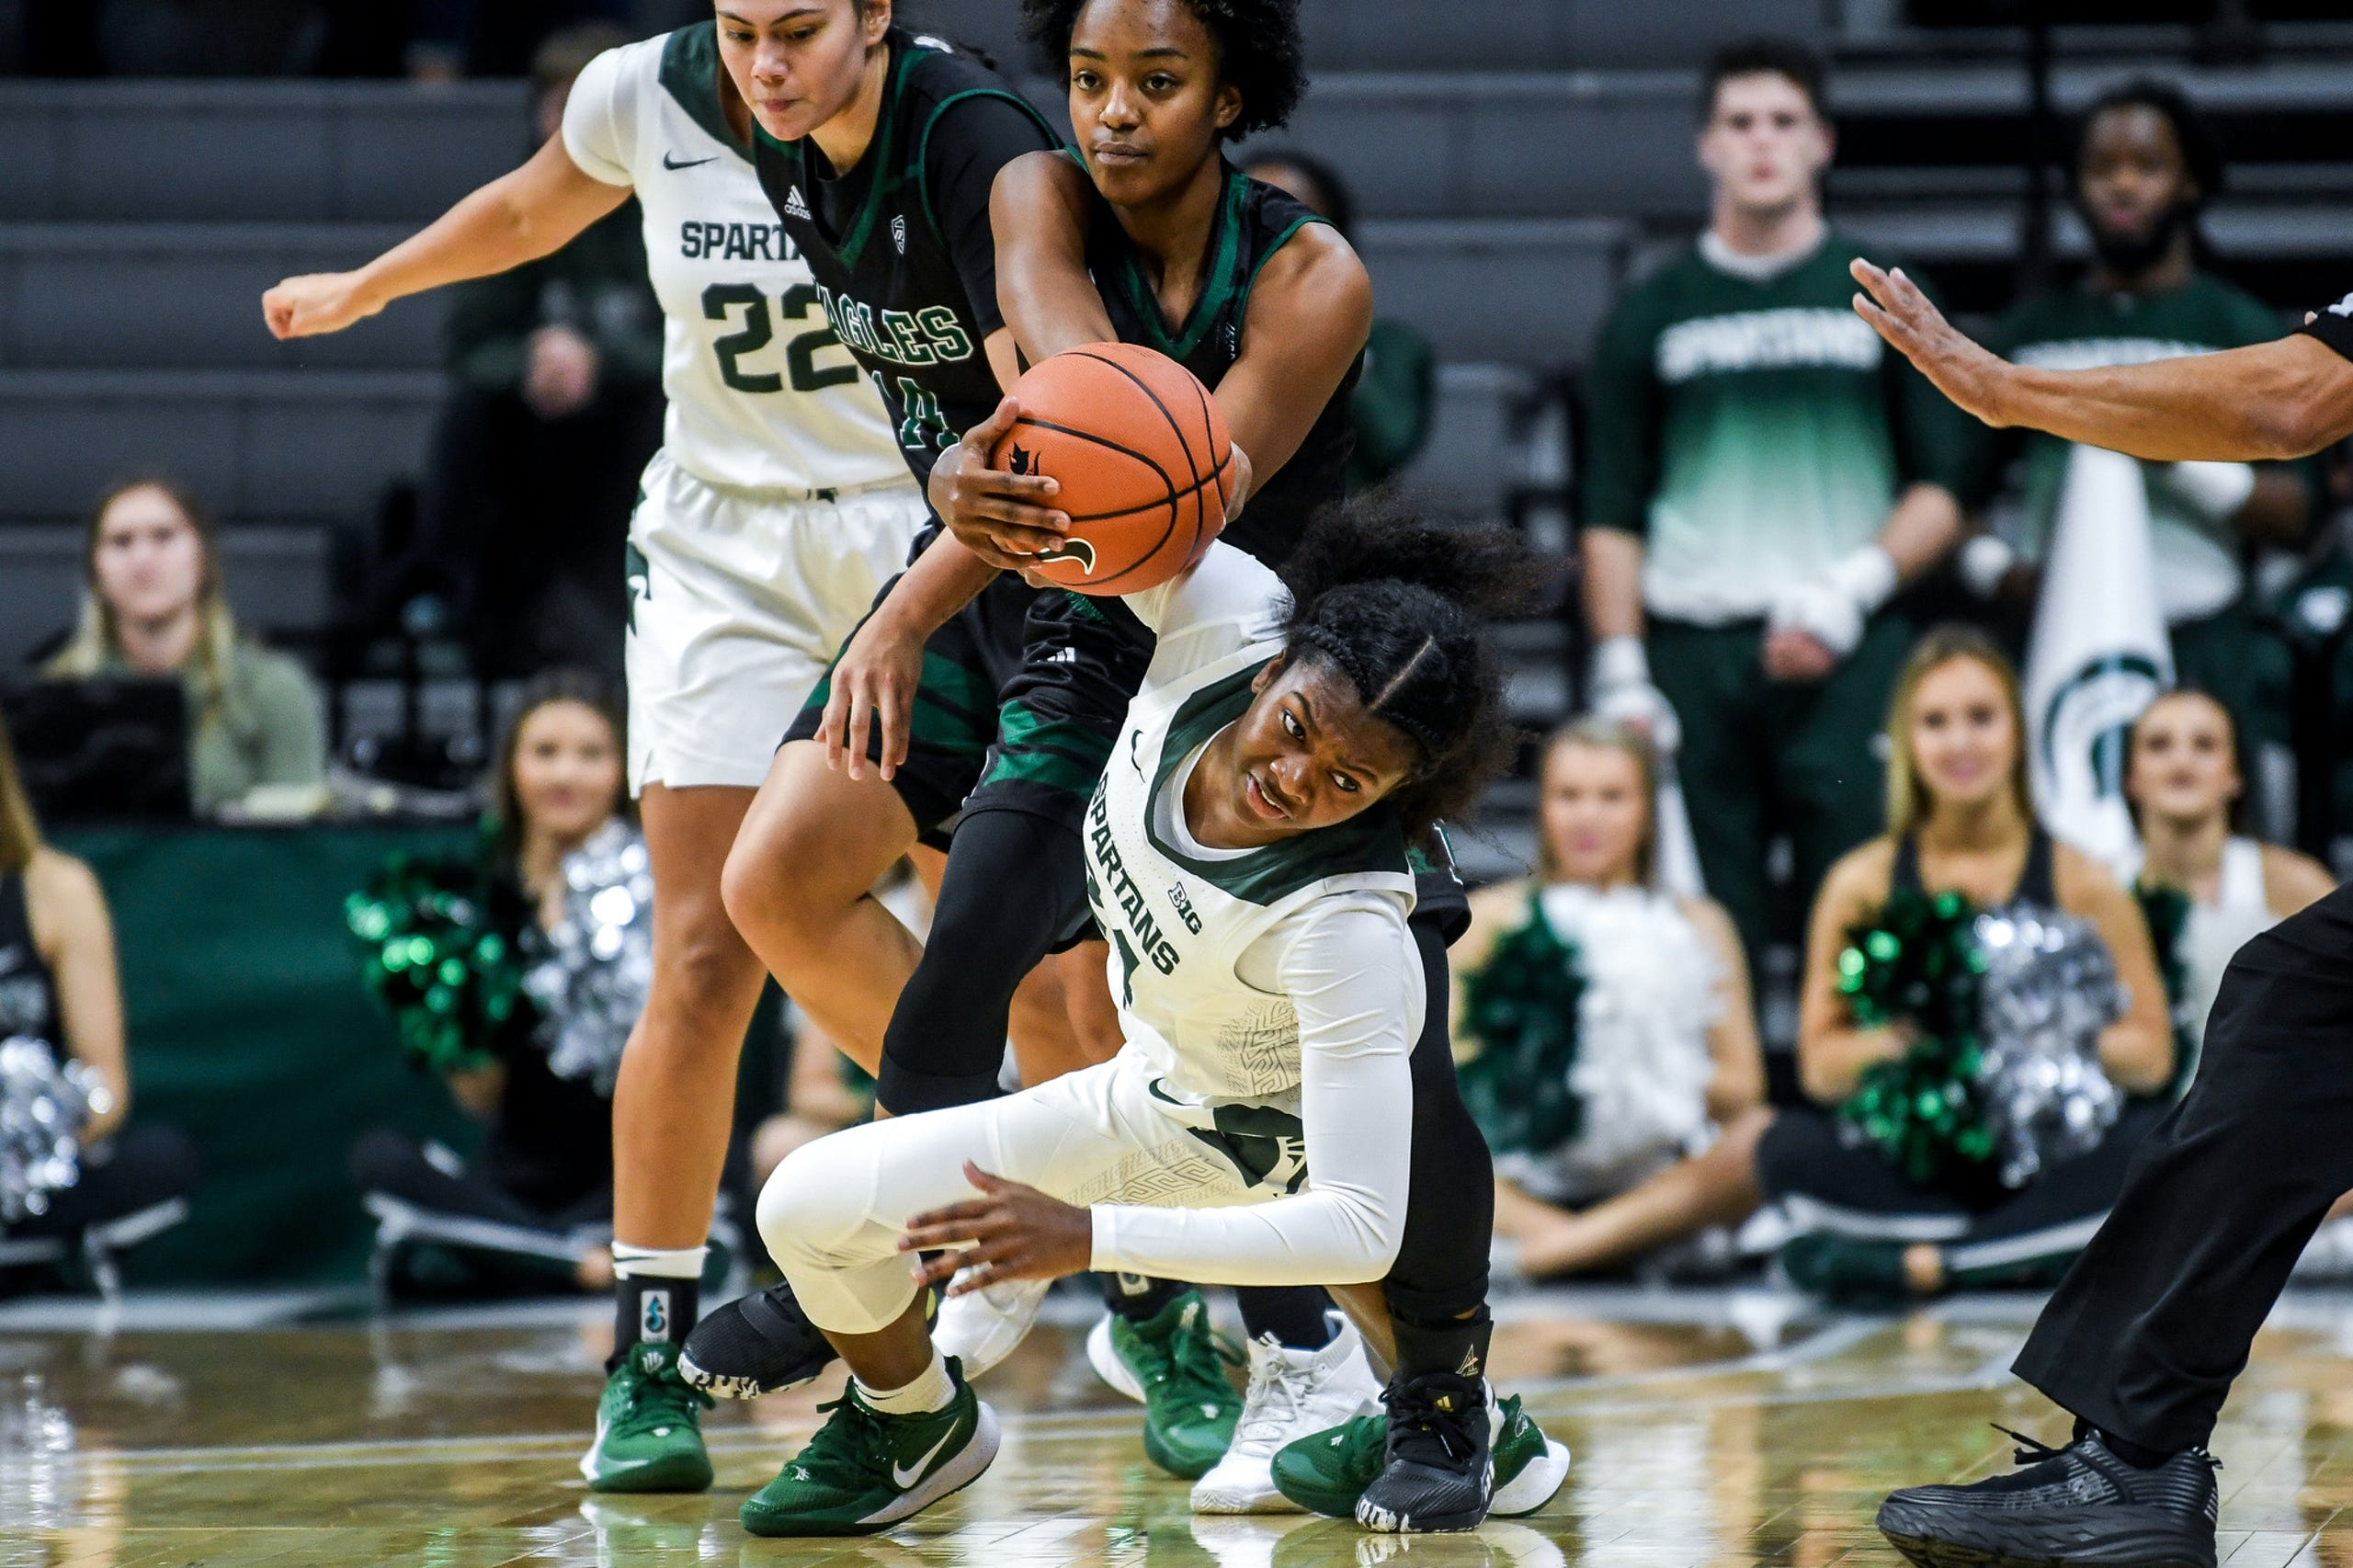 Michigan State's Nia Clouden, center, battles Eastern Michigan's Juanita Agosto, and JaBria Knight, left, for possession during the first quarter on Tuesday, Nov. 5, 2019, at the Breslin Center in East Lansing.